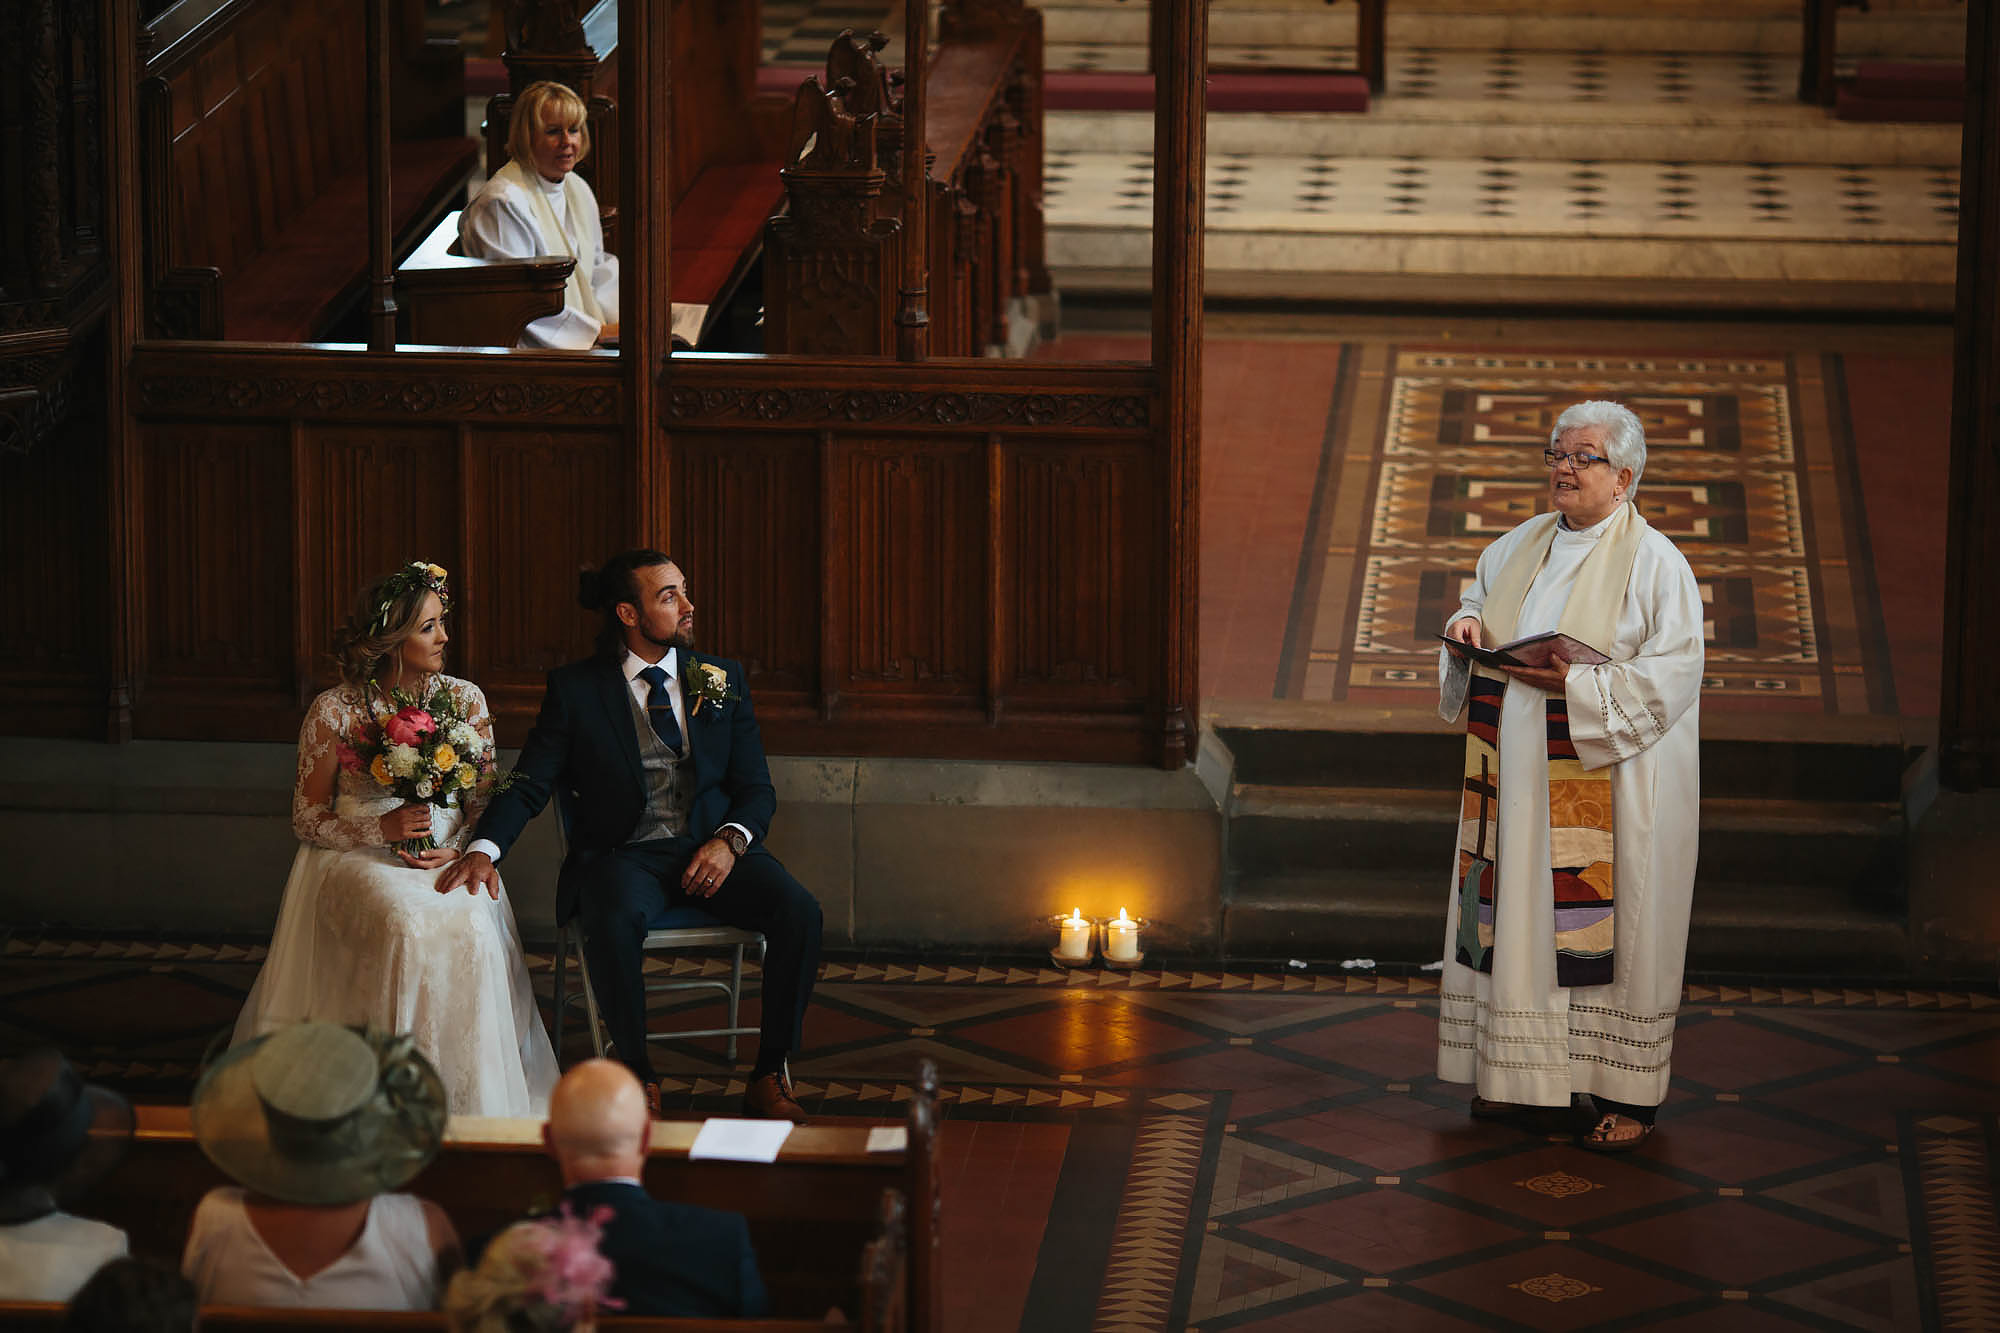 Bride and groom look to the vicar during the wedding ceremony in Manchester